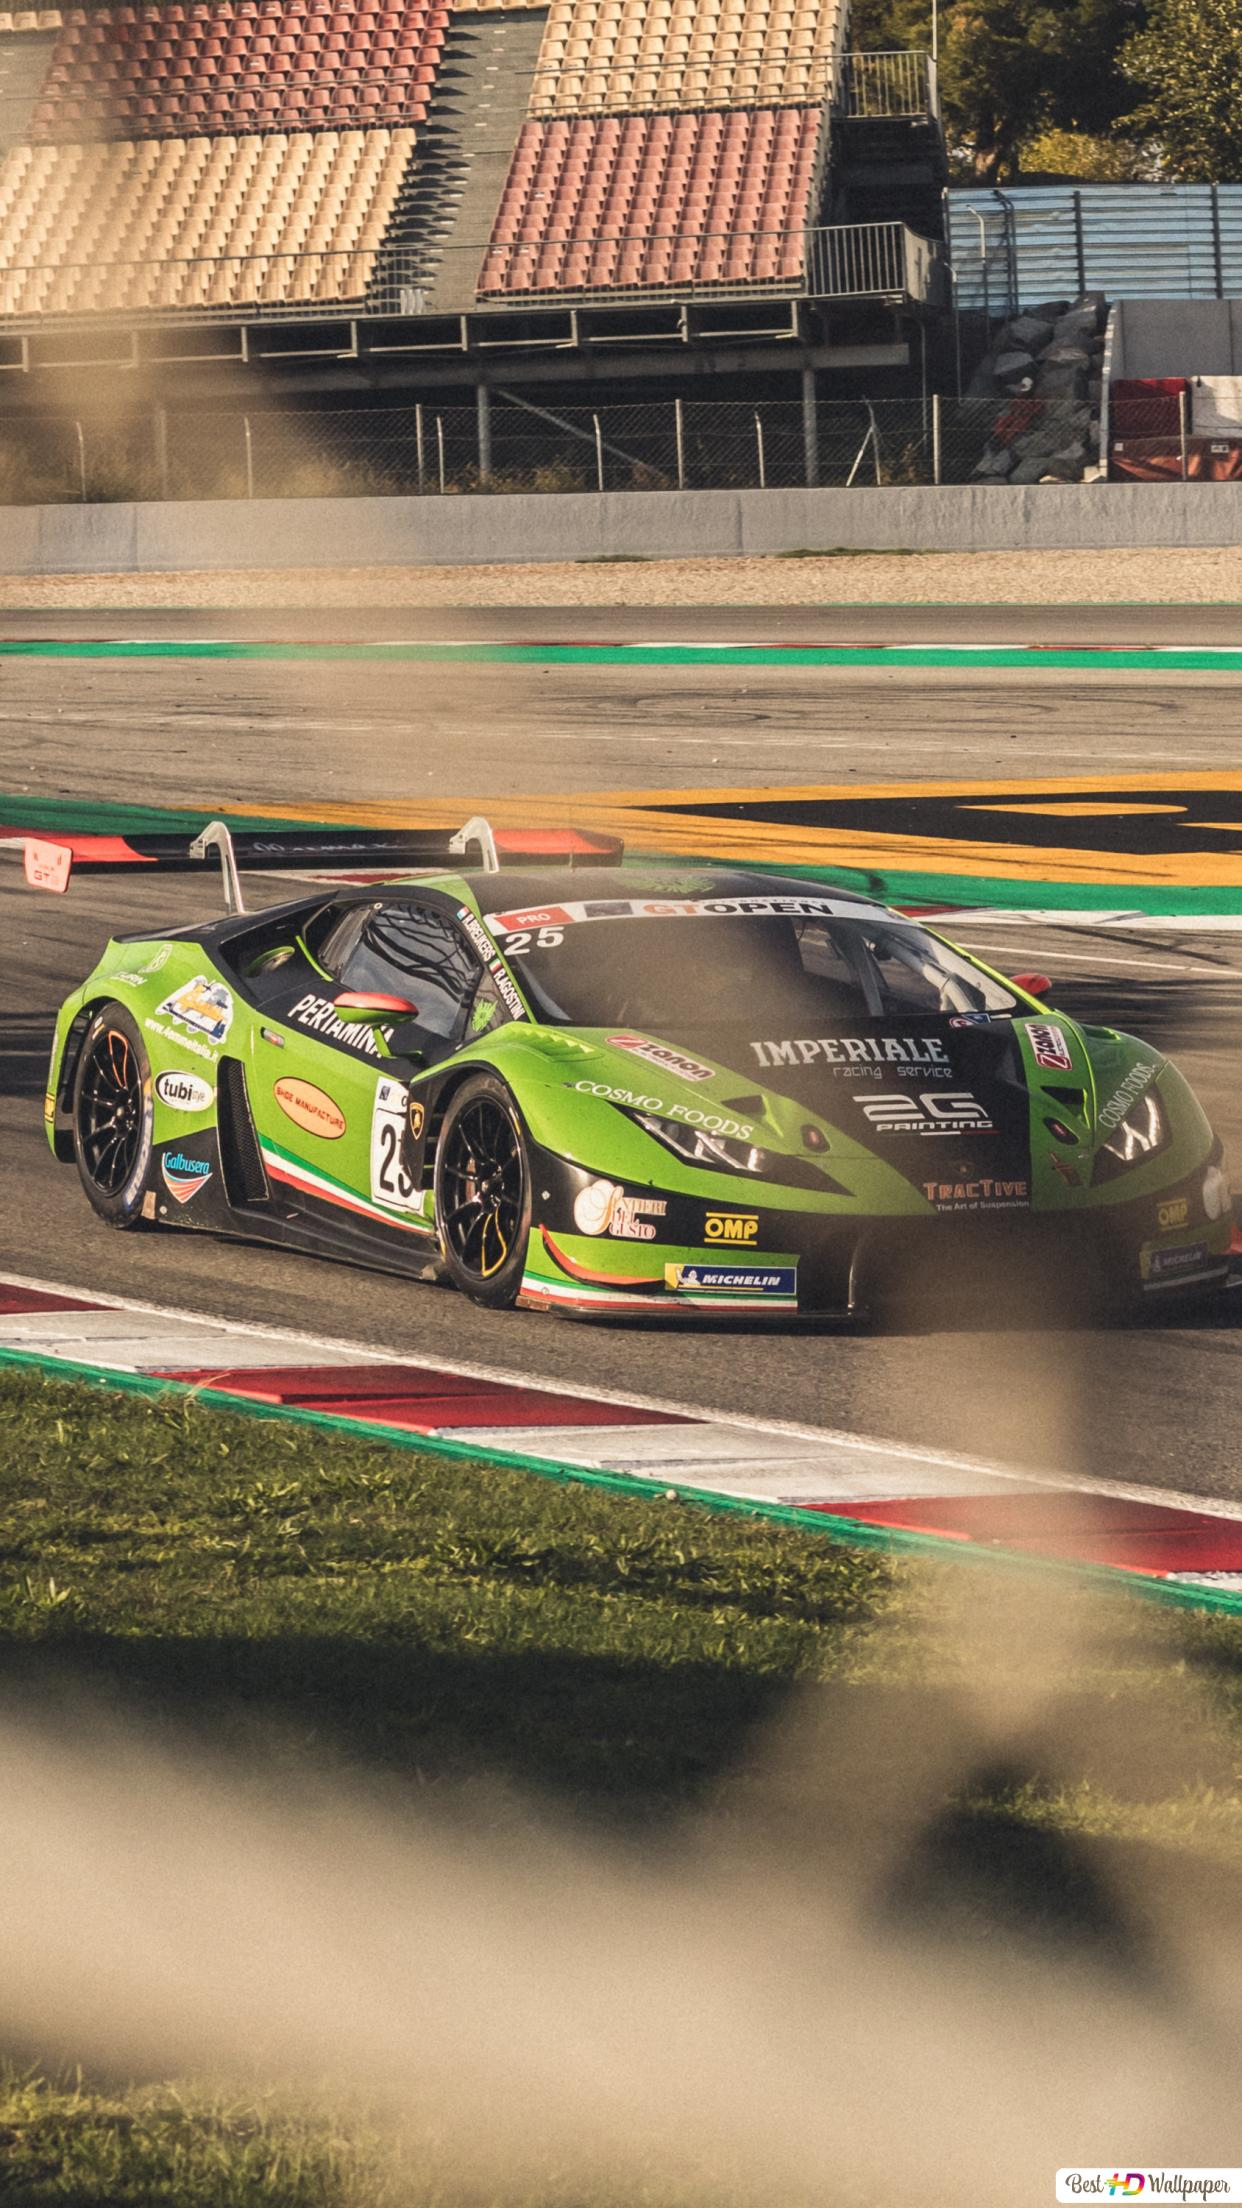 Green And Black Lamborghini Race Car On Track During Daytime Hd Wallpaper Download